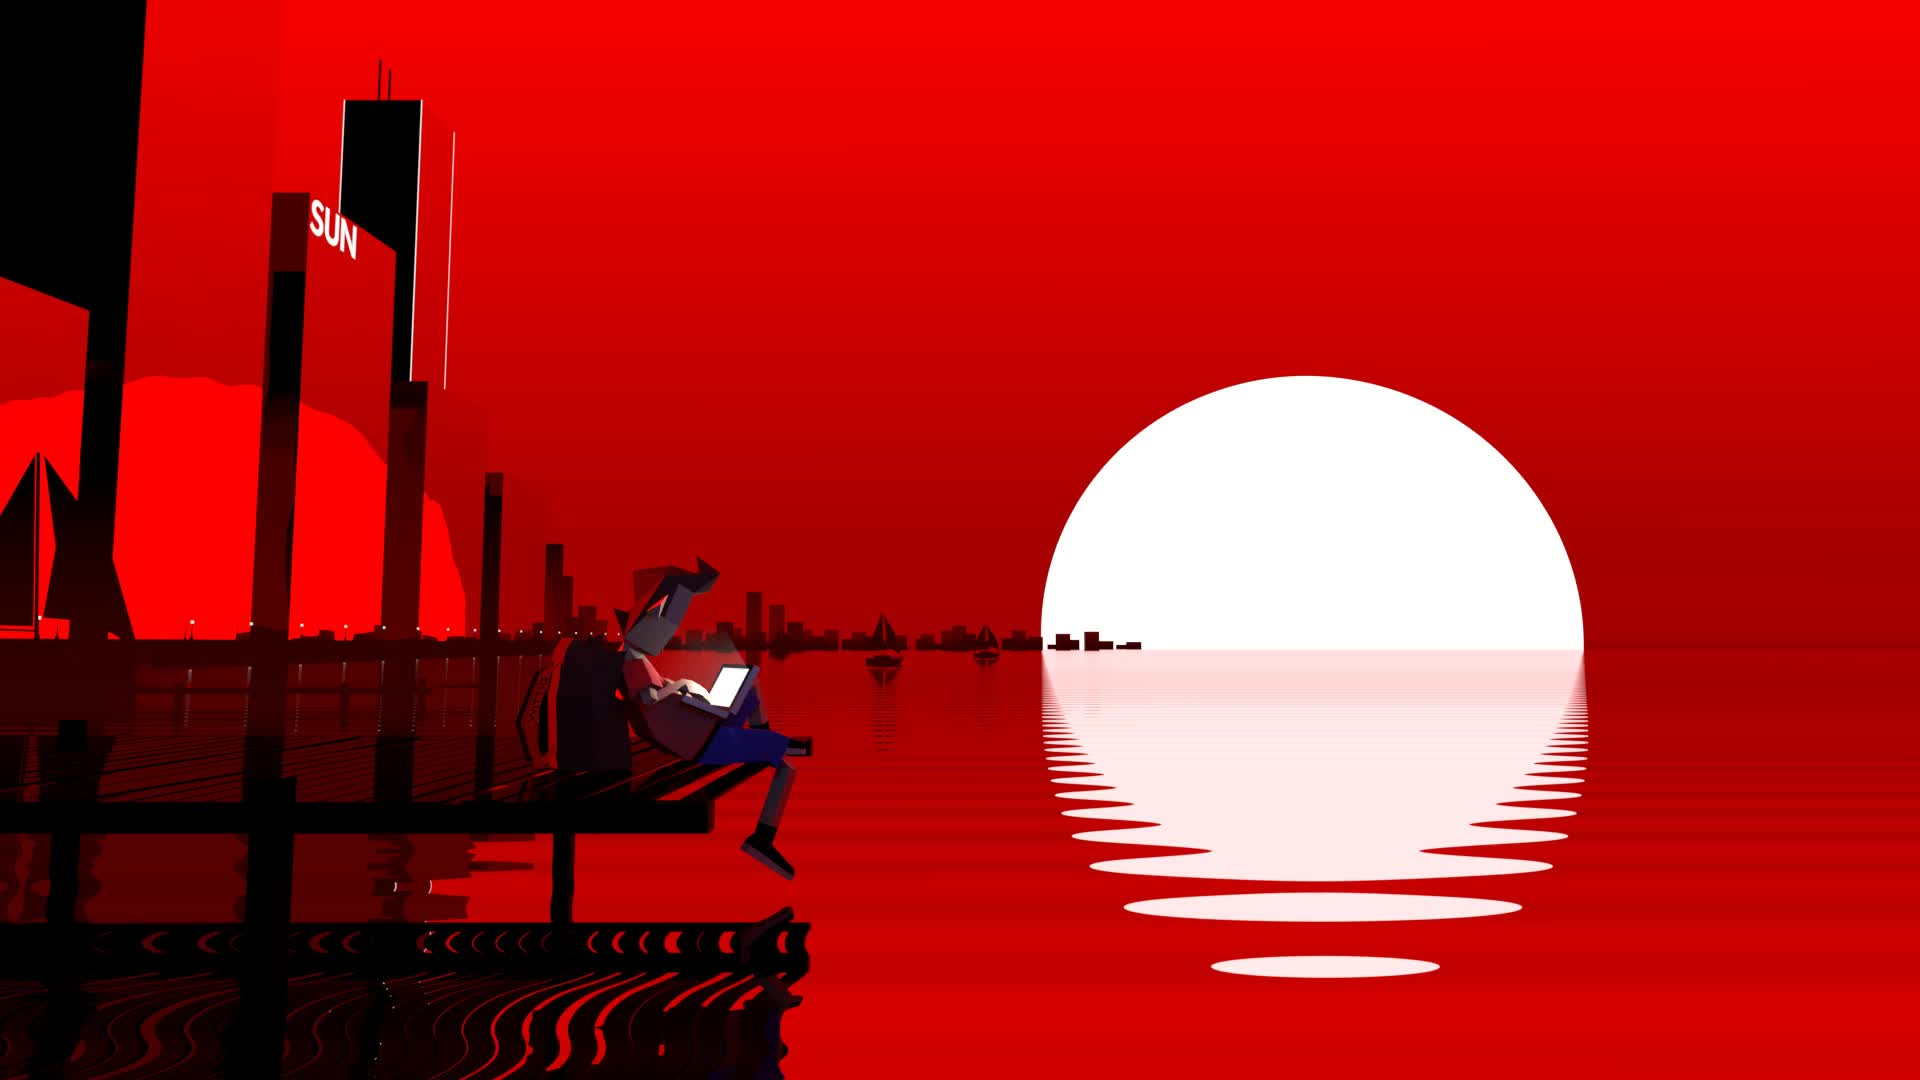 japan, low poly, sun, sunset, Low Poly Cinemagraph